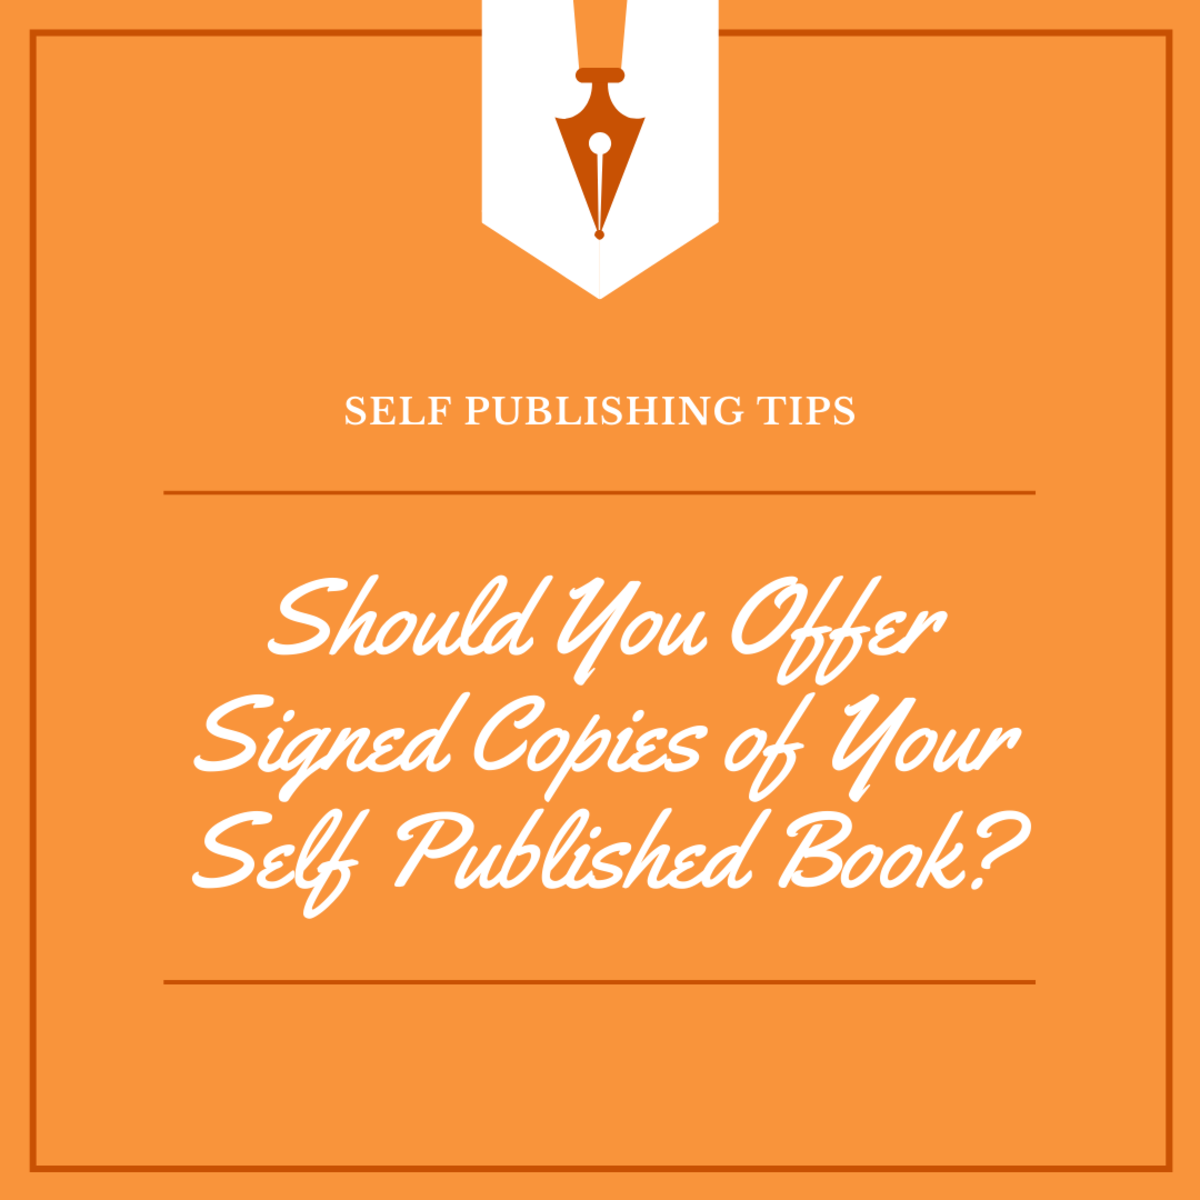 Should You Offer Signed Copies of Your Self Published Book?